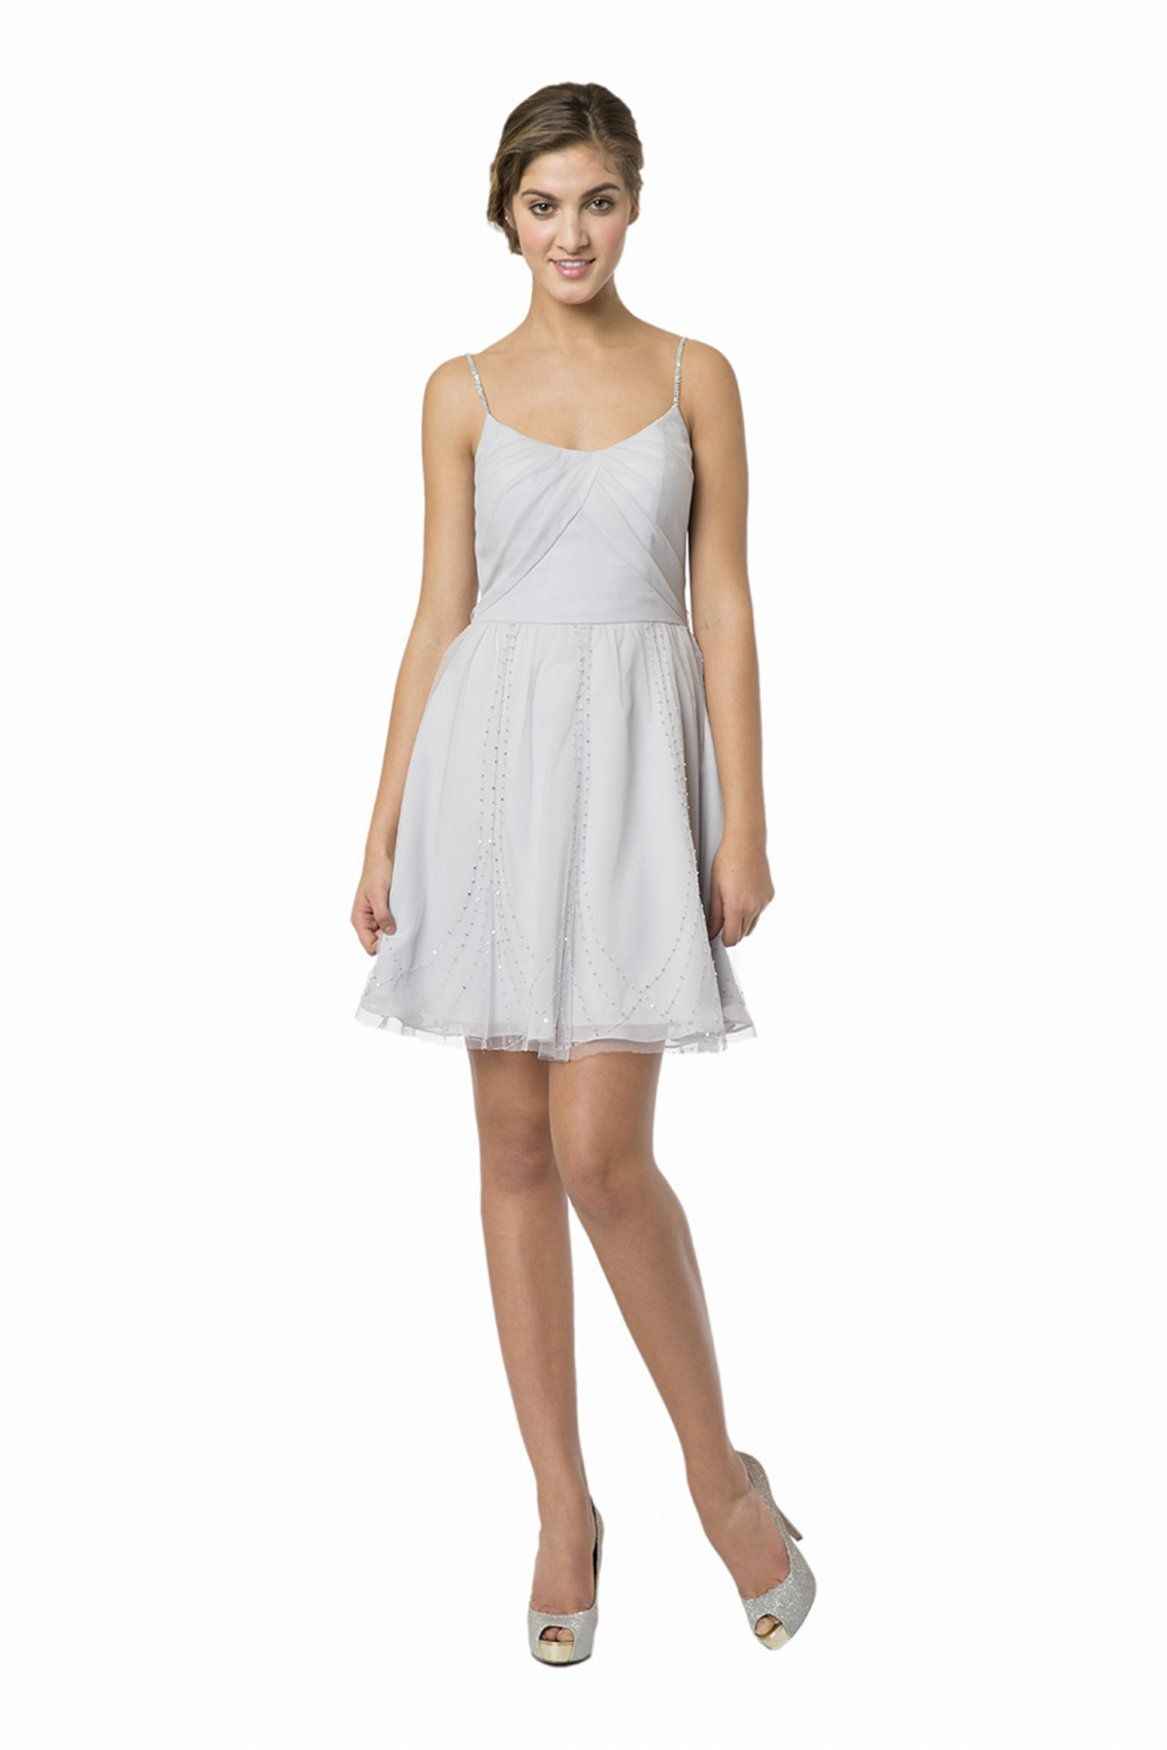 Look stunning in this short dress from bari jay bridesmaid the